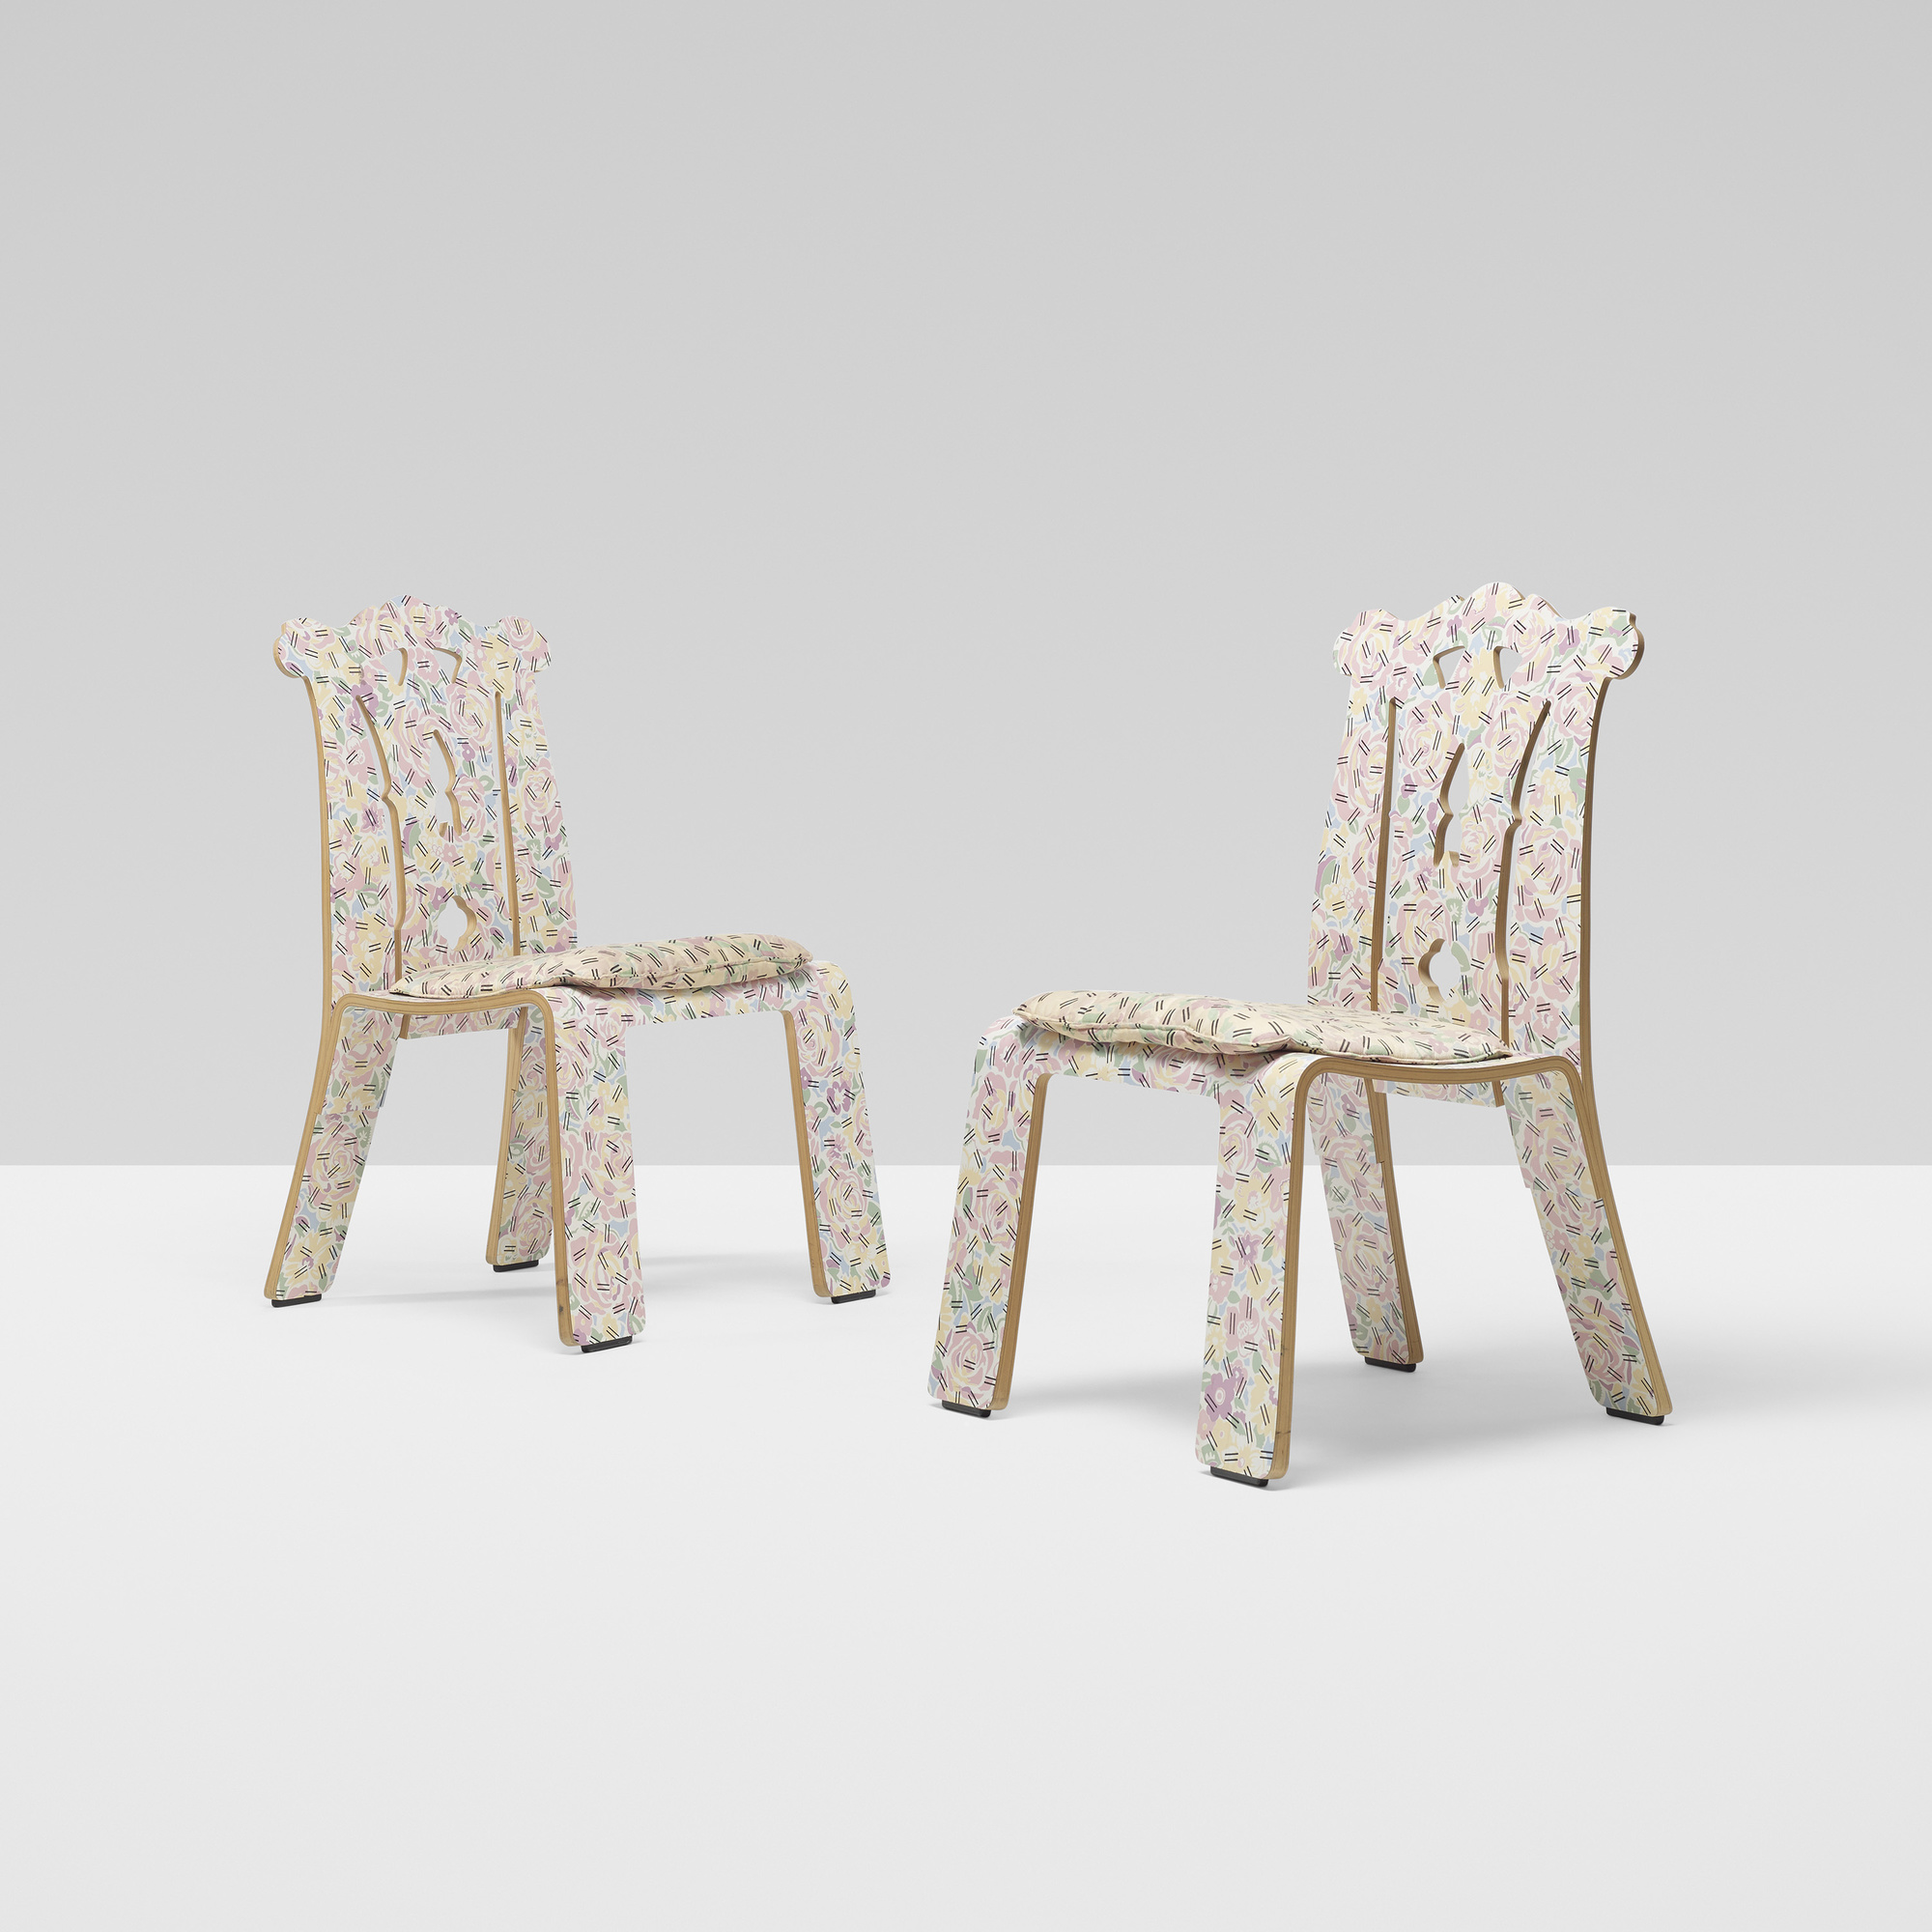 265 Robert Venturi / Chippendale chairs pair (1 of 4)  sc 1 st  Wright20 & 265: ROBERT VENTURI Chippendale chairs pair u003c Design 10 December ...